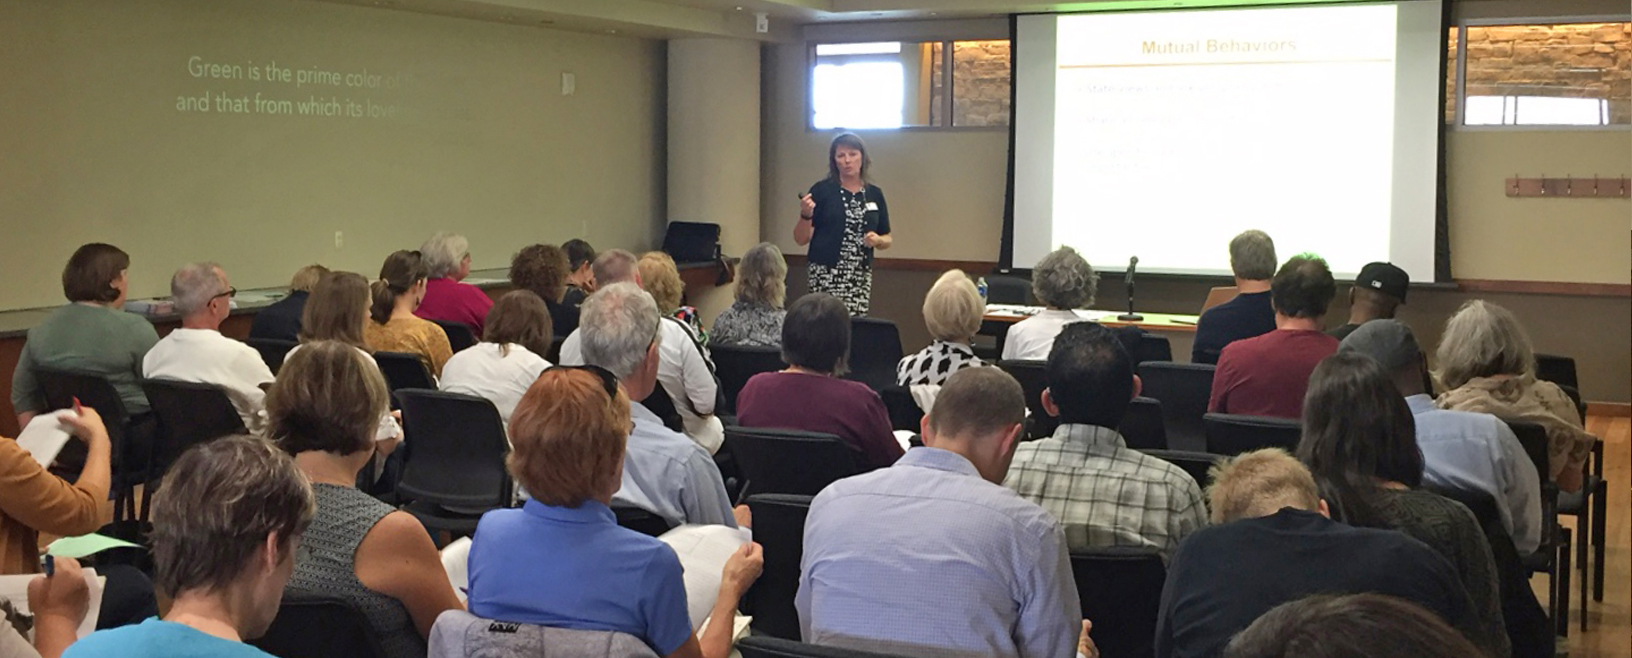 Sherry speaking at a session.